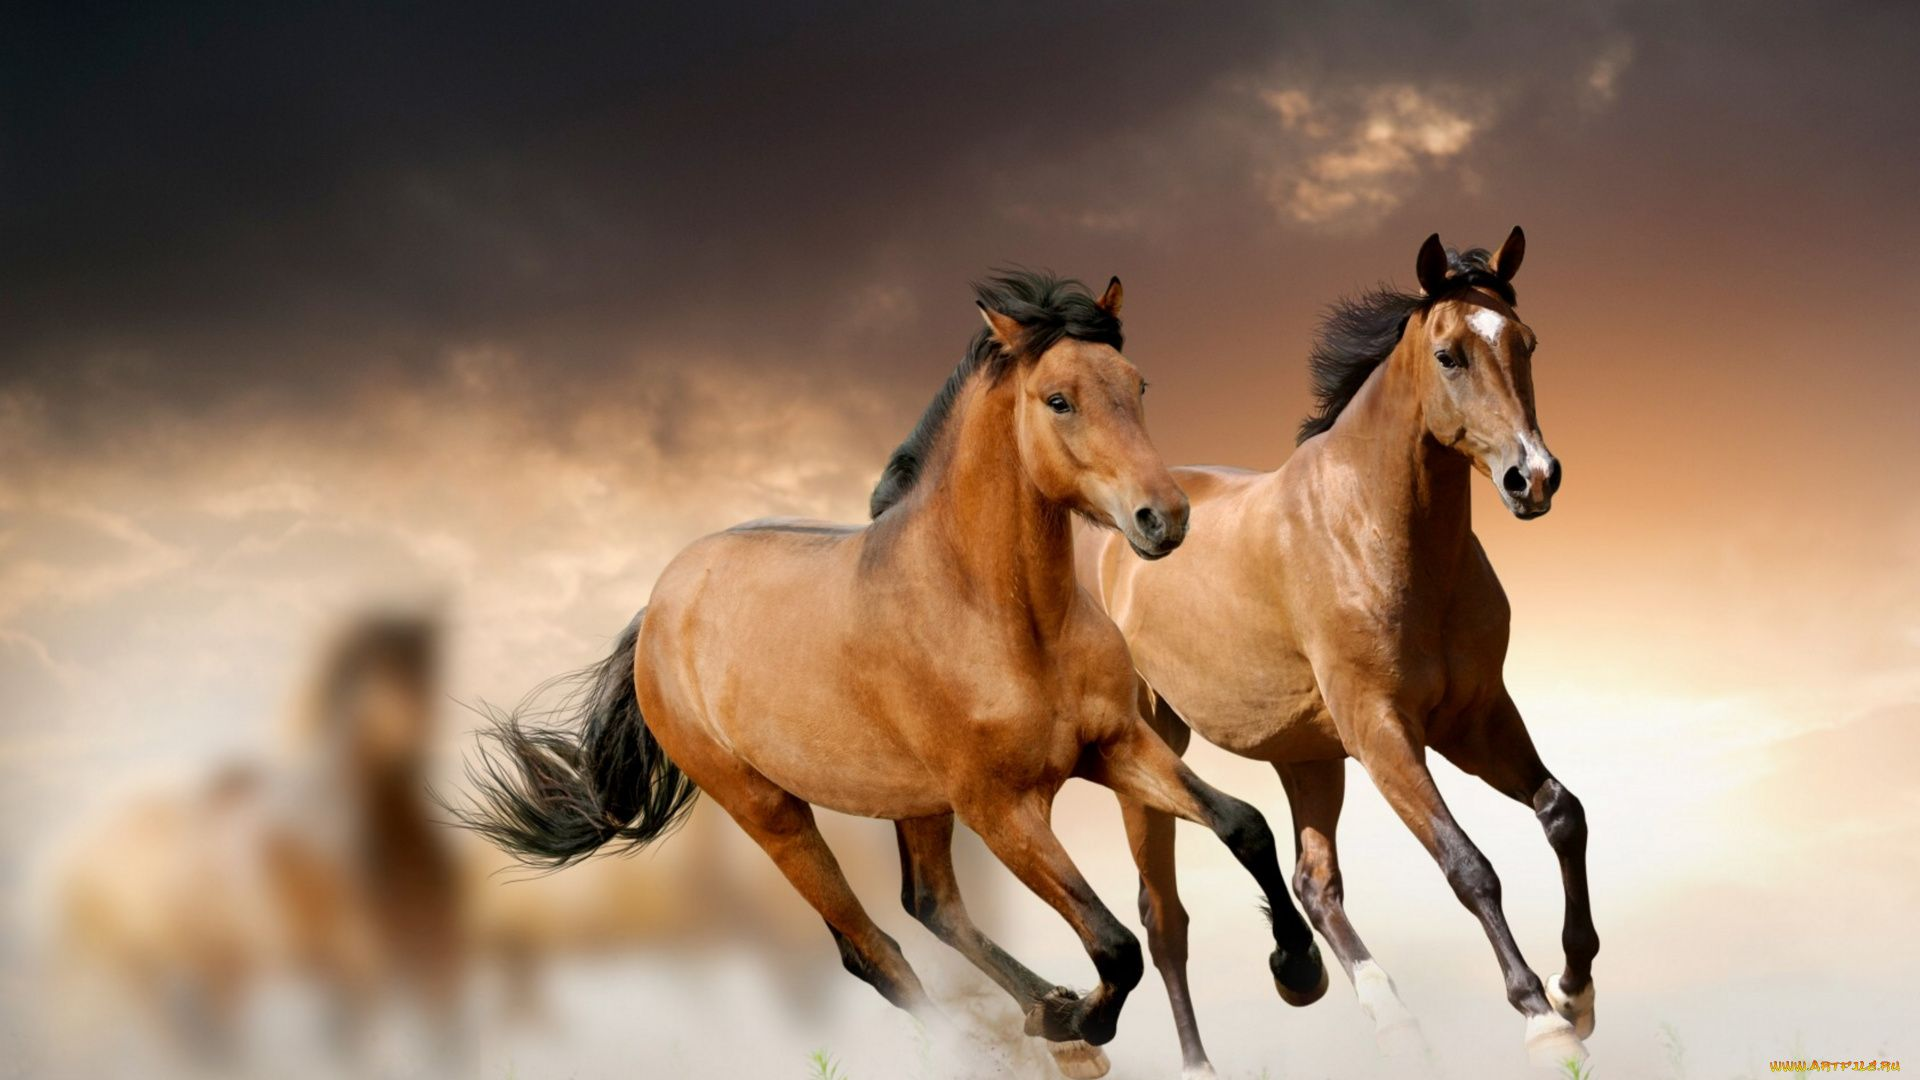 The Wallpapers Horses Beautiful Large Full Screen Free